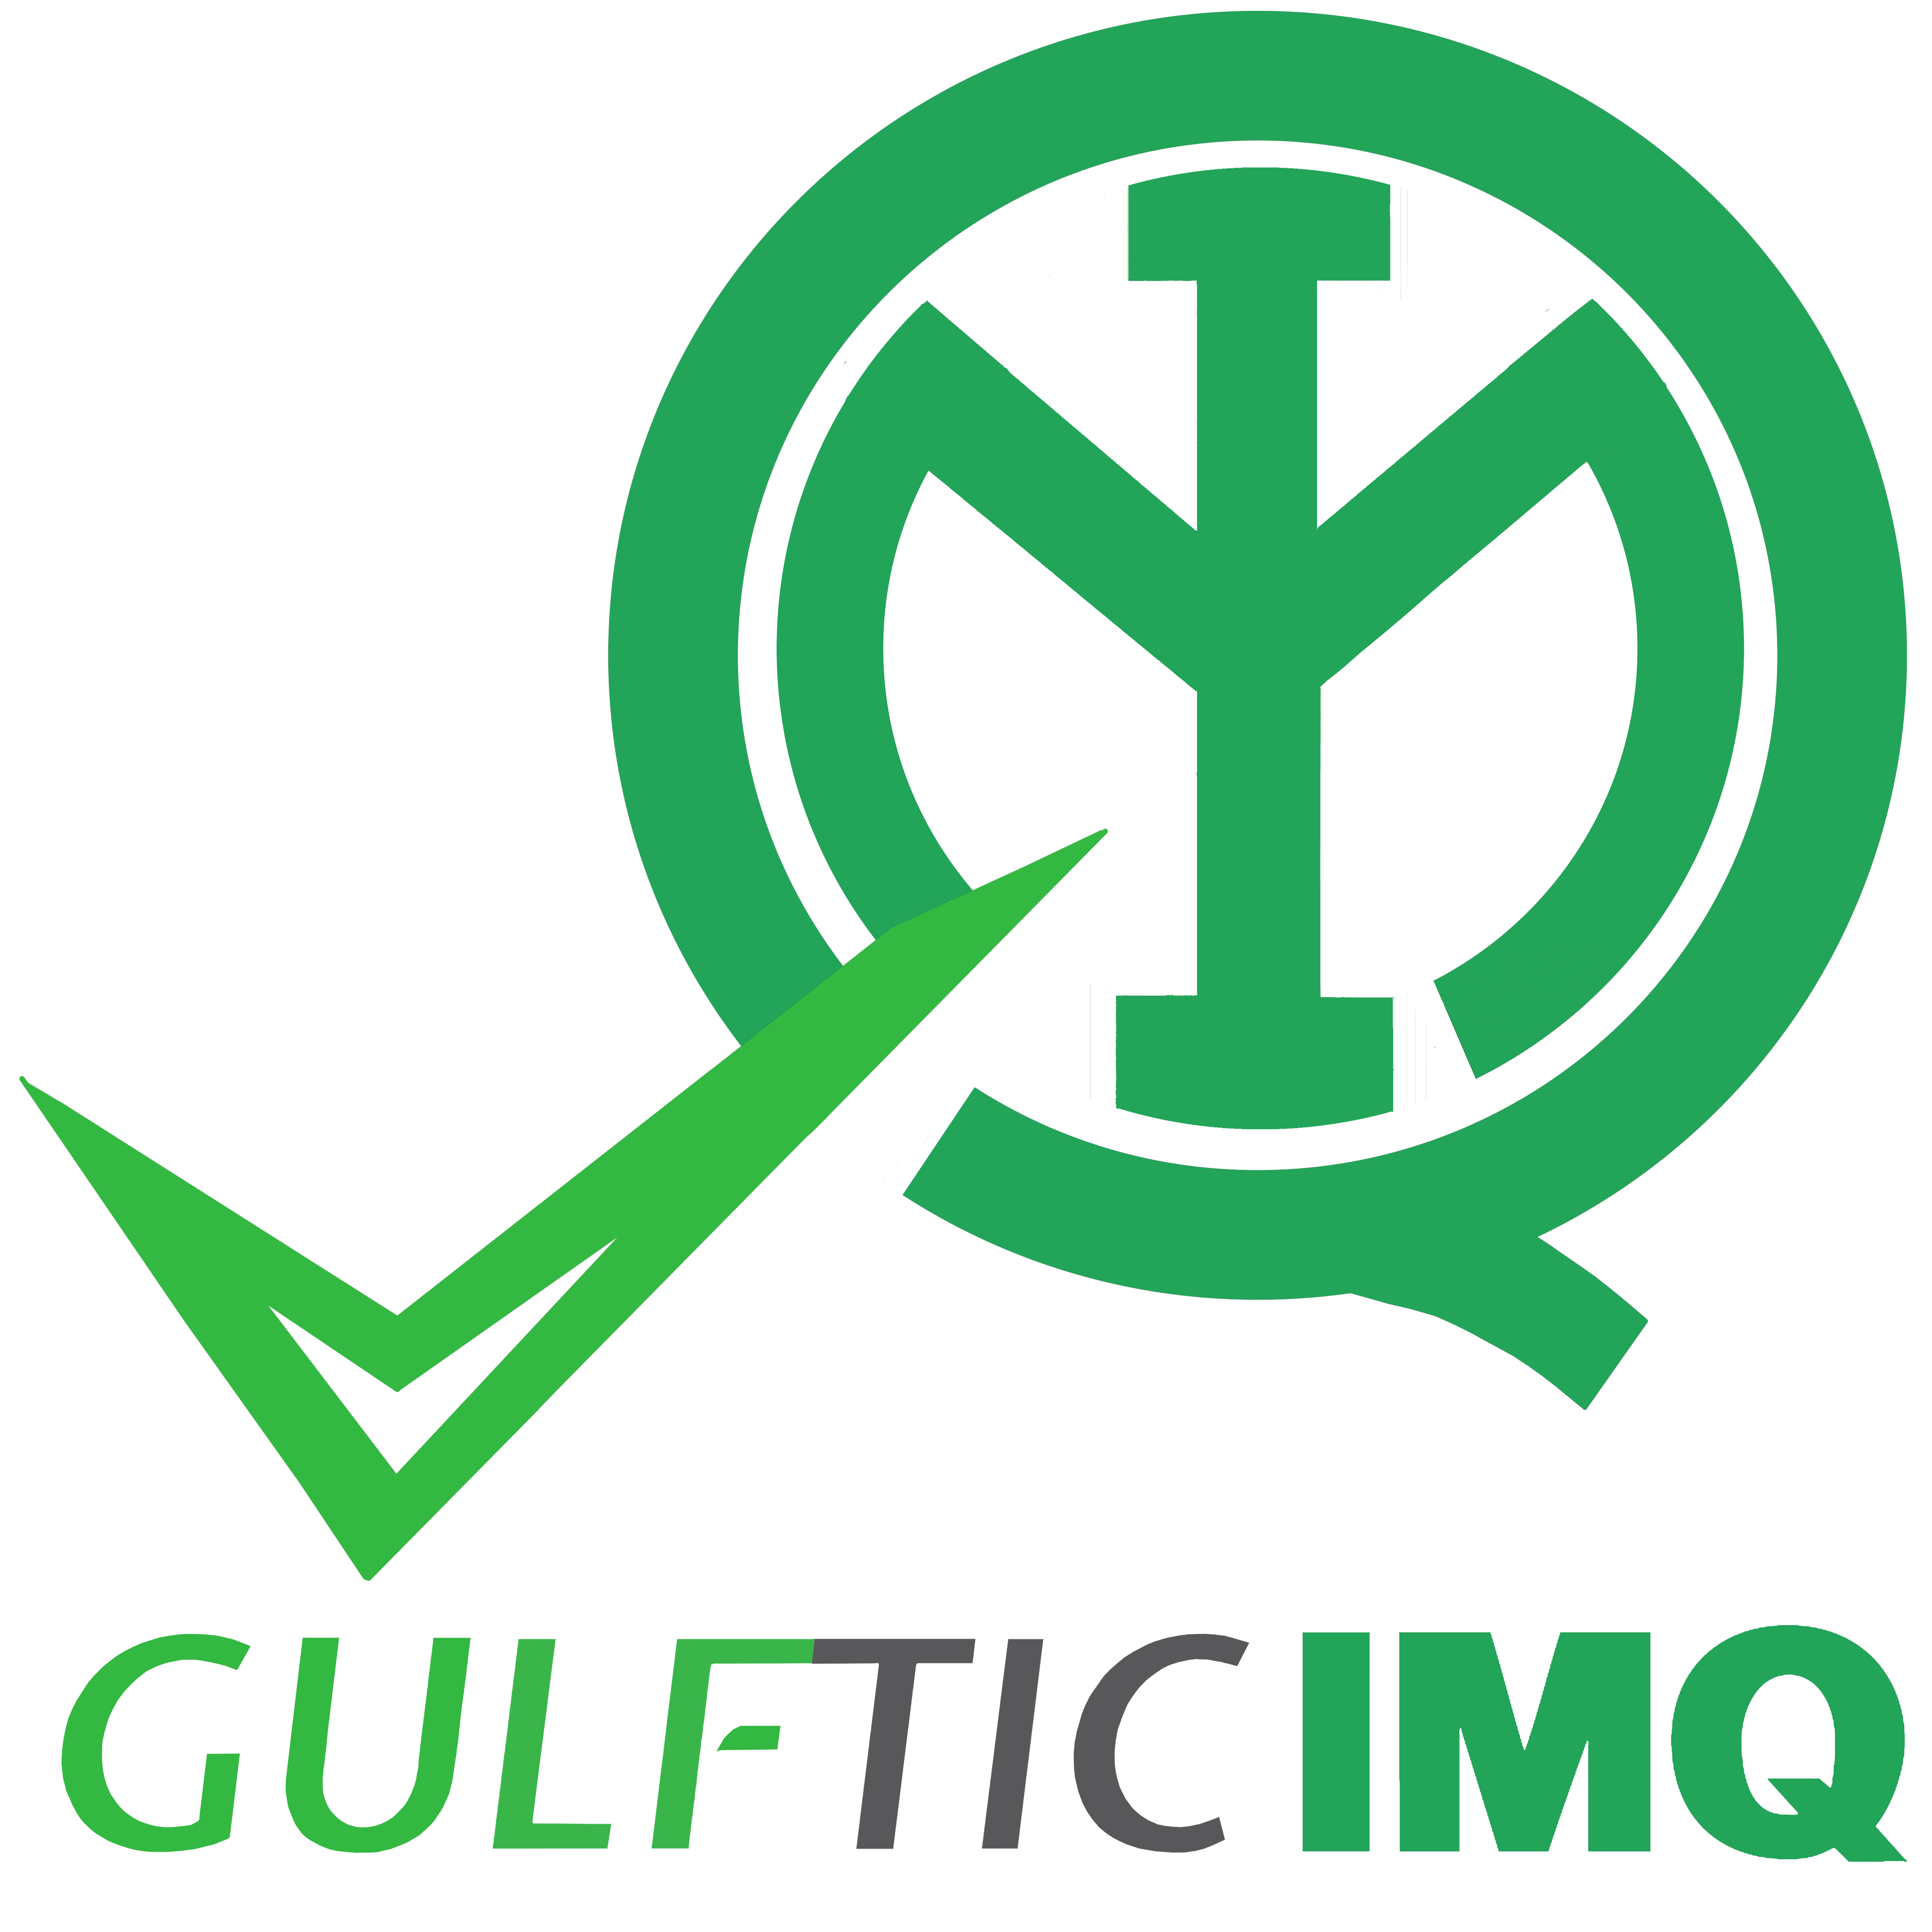 GULFTIC CERTIFICATION LLC